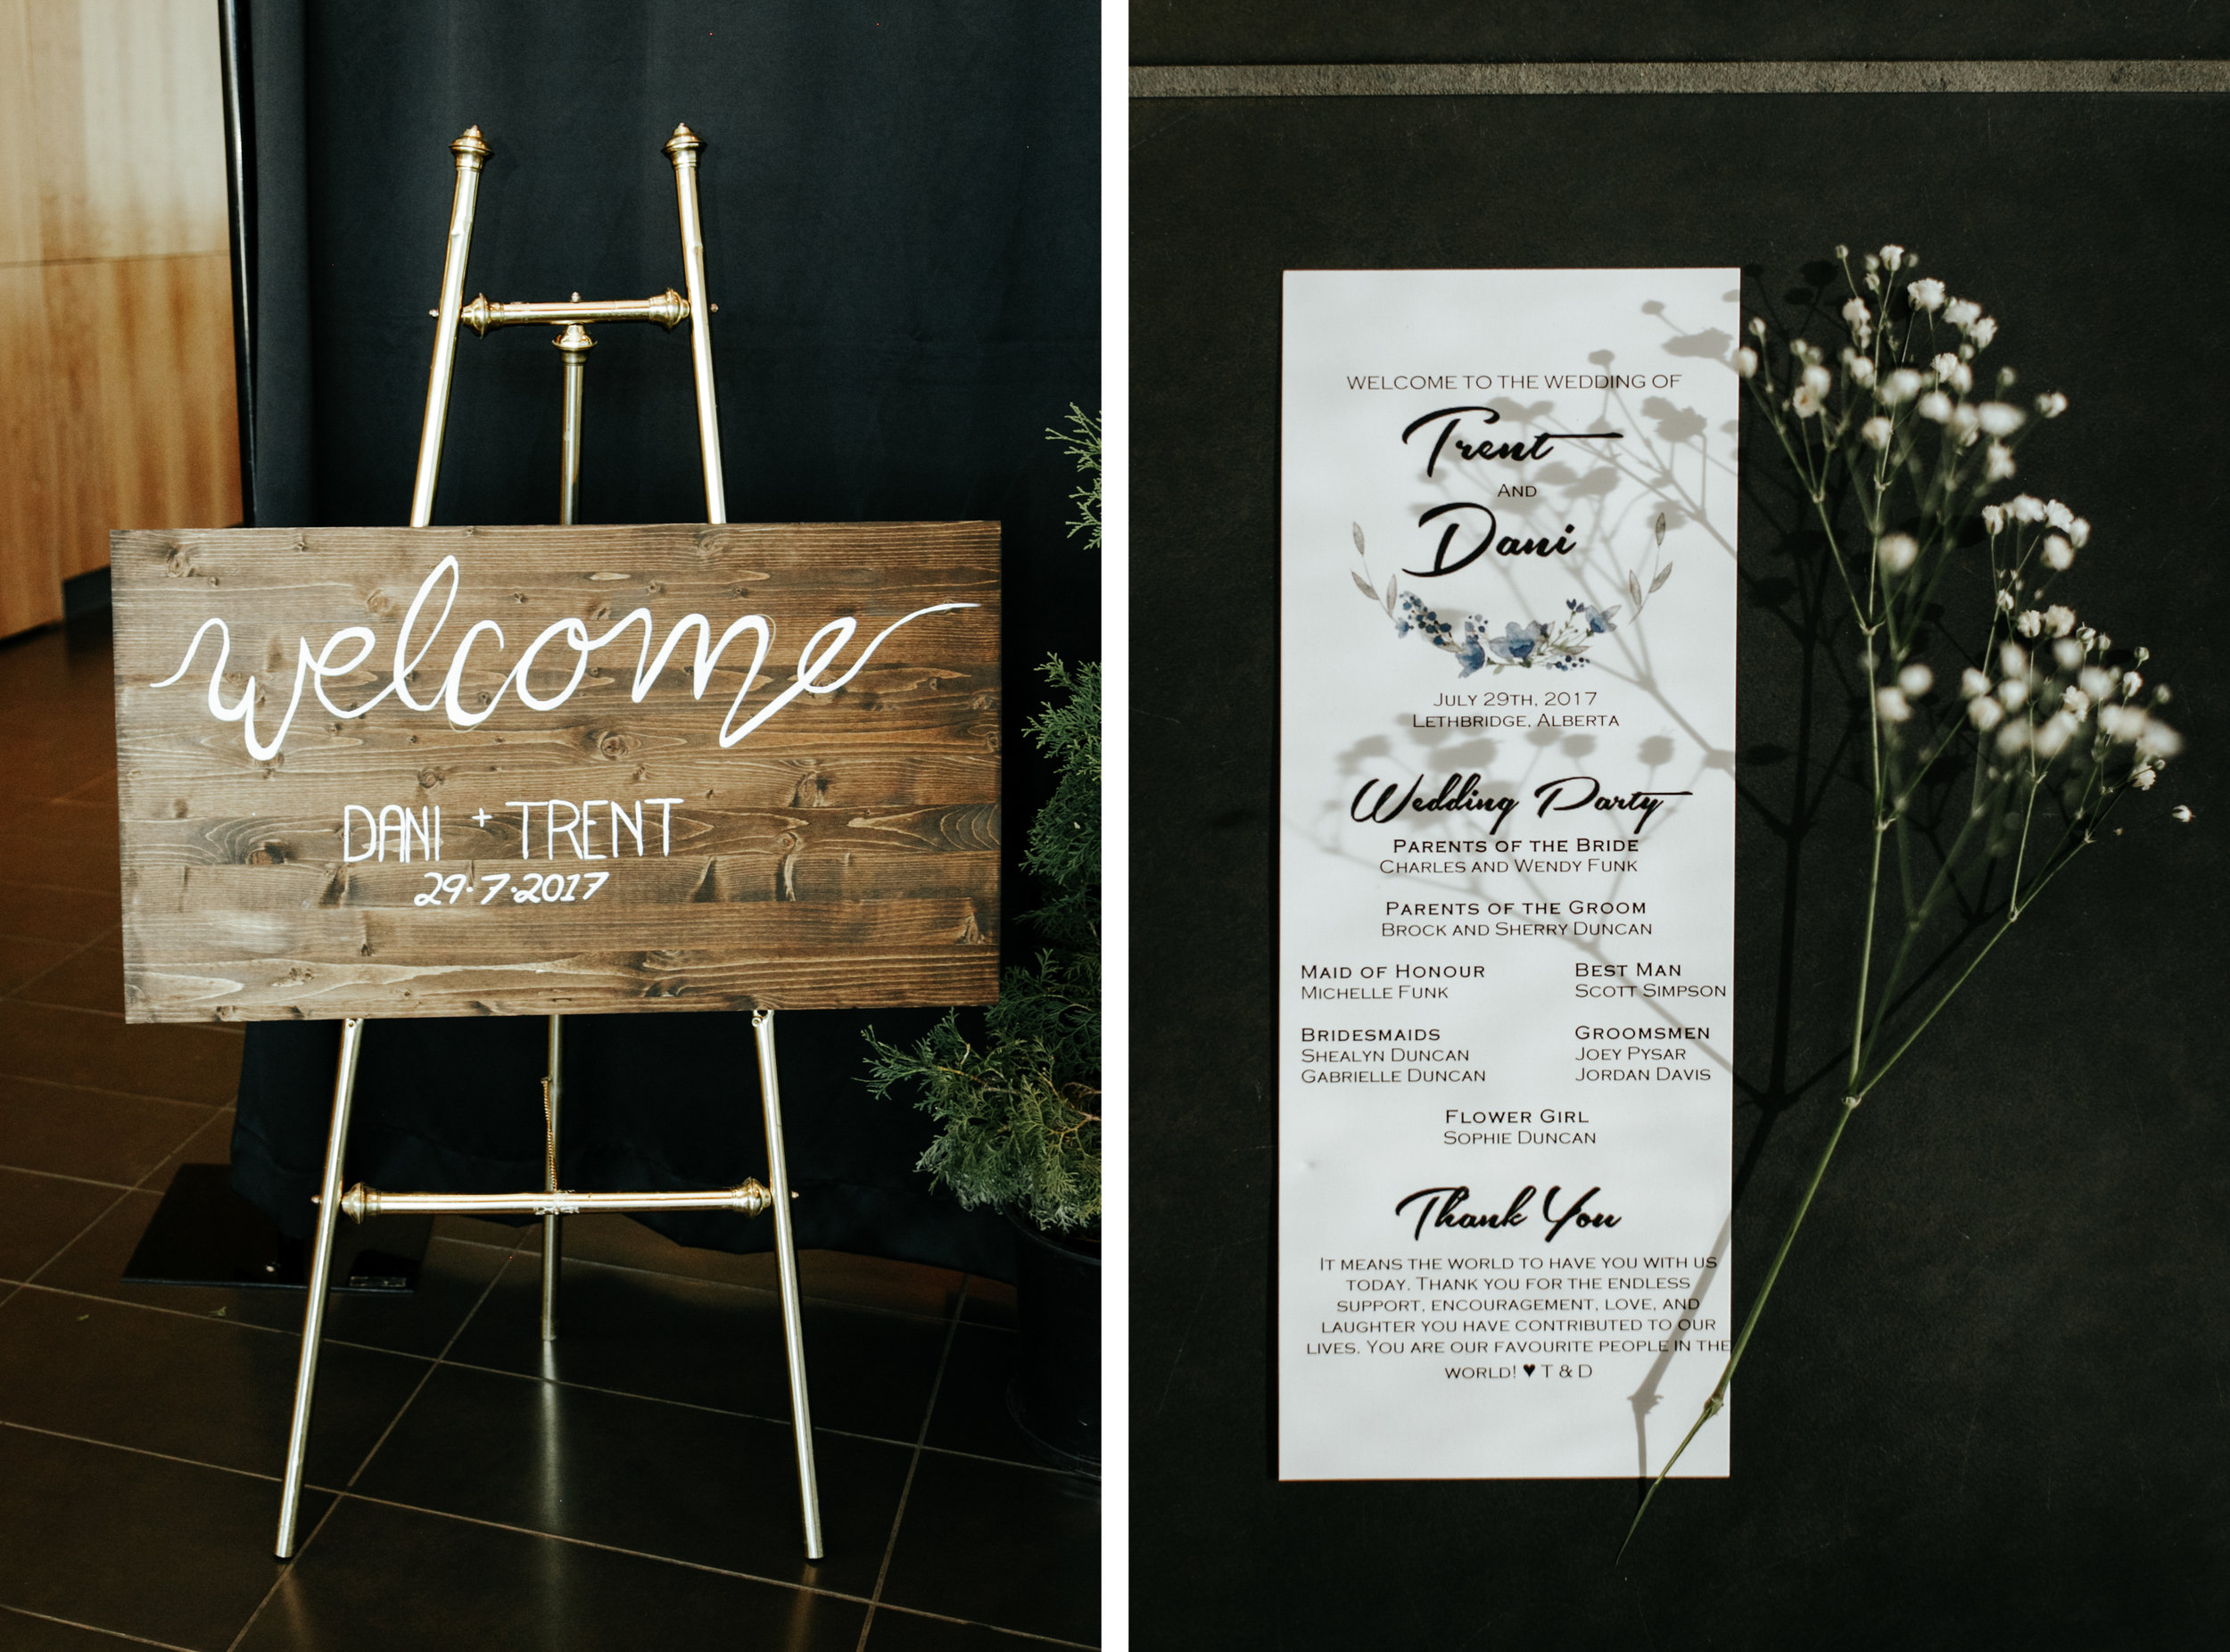 lethbridge-wedding-photographer-love-and-be-loved-photography-trent-danielle-galt-reception-picture-image-photo-40.jpg